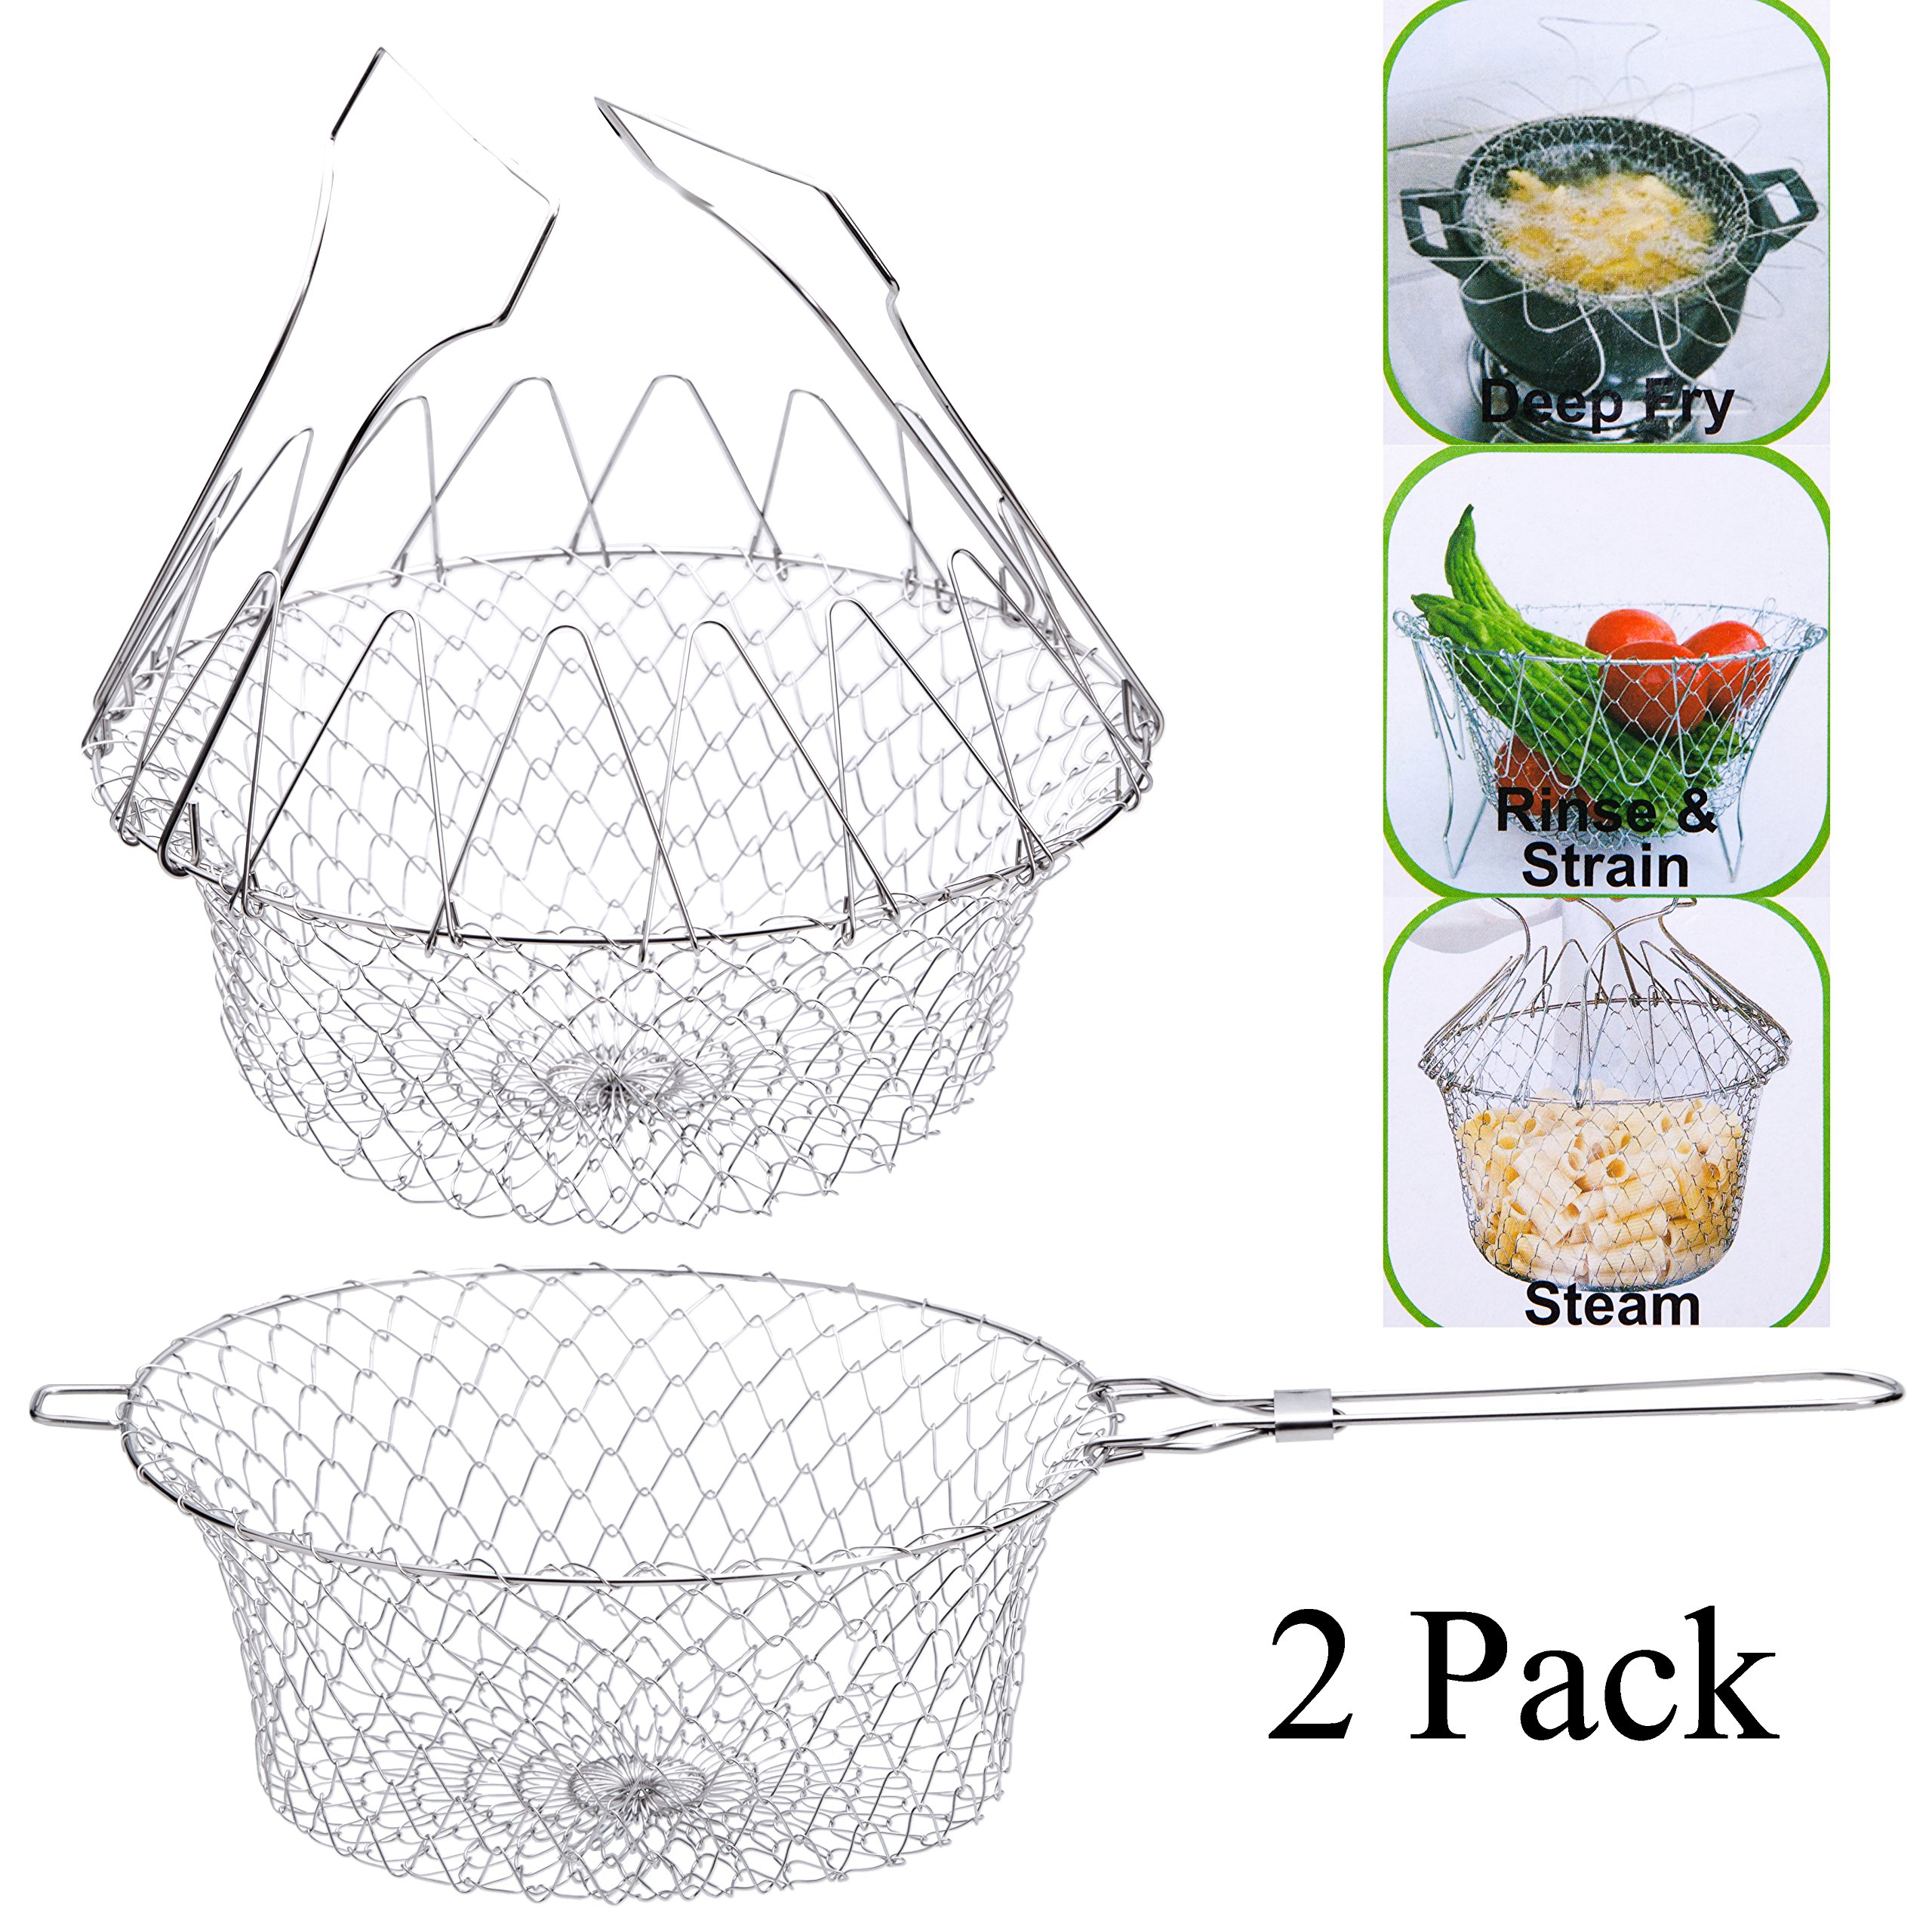 2pcs Chef Deep Fry Basket with Handle, Stainless Steel Foldable Steam Rinse Strain Food Oil Strainer Colander Steamer Kitchen Cooking Net for French Fires Fruits Vegetables Spaghetti Gift